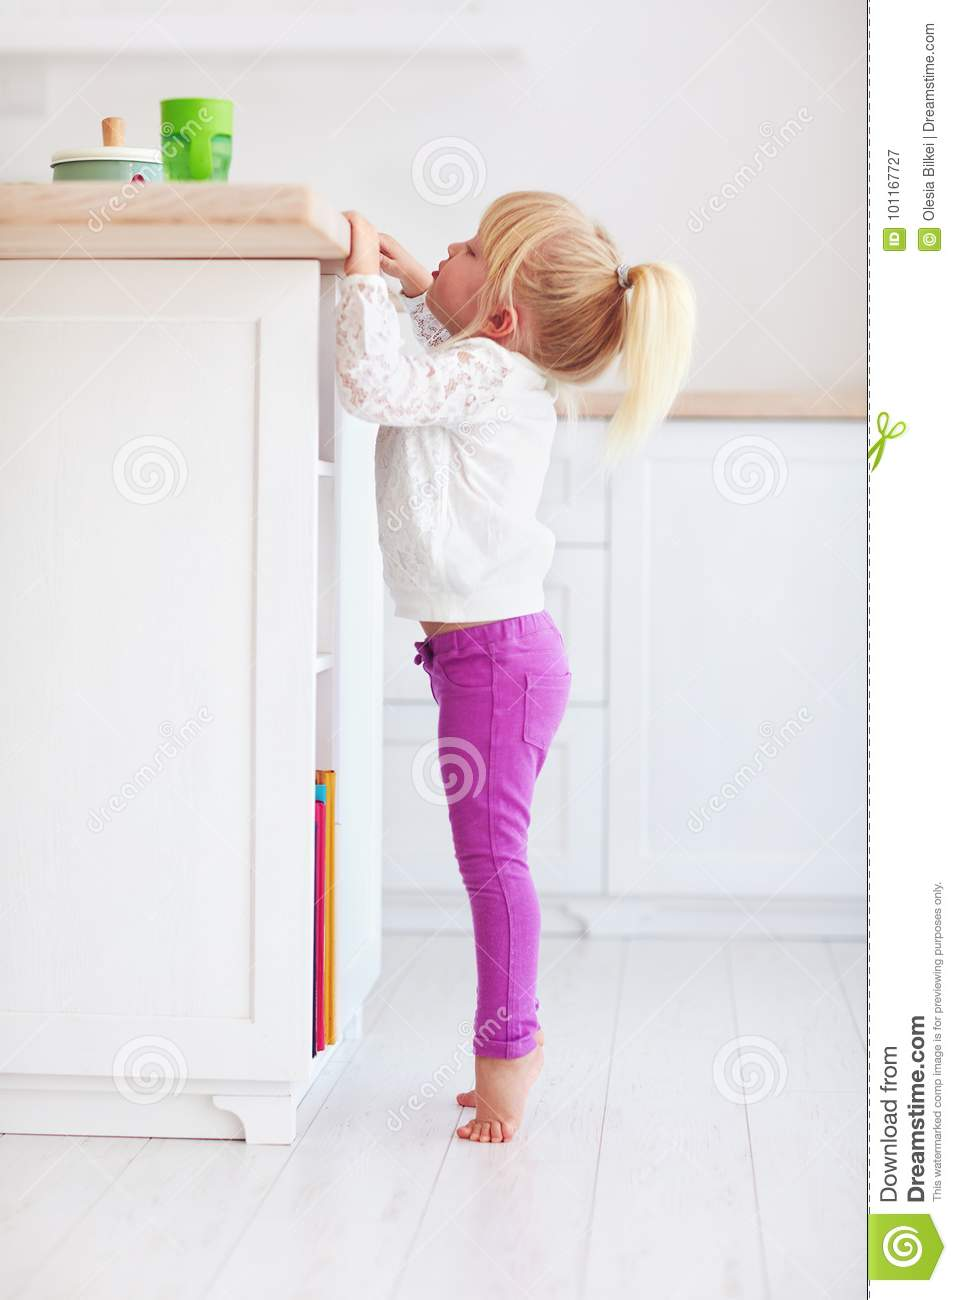 Cute Little Baby Girl Trying To Reach A Bottle From Kitchen Desk ...